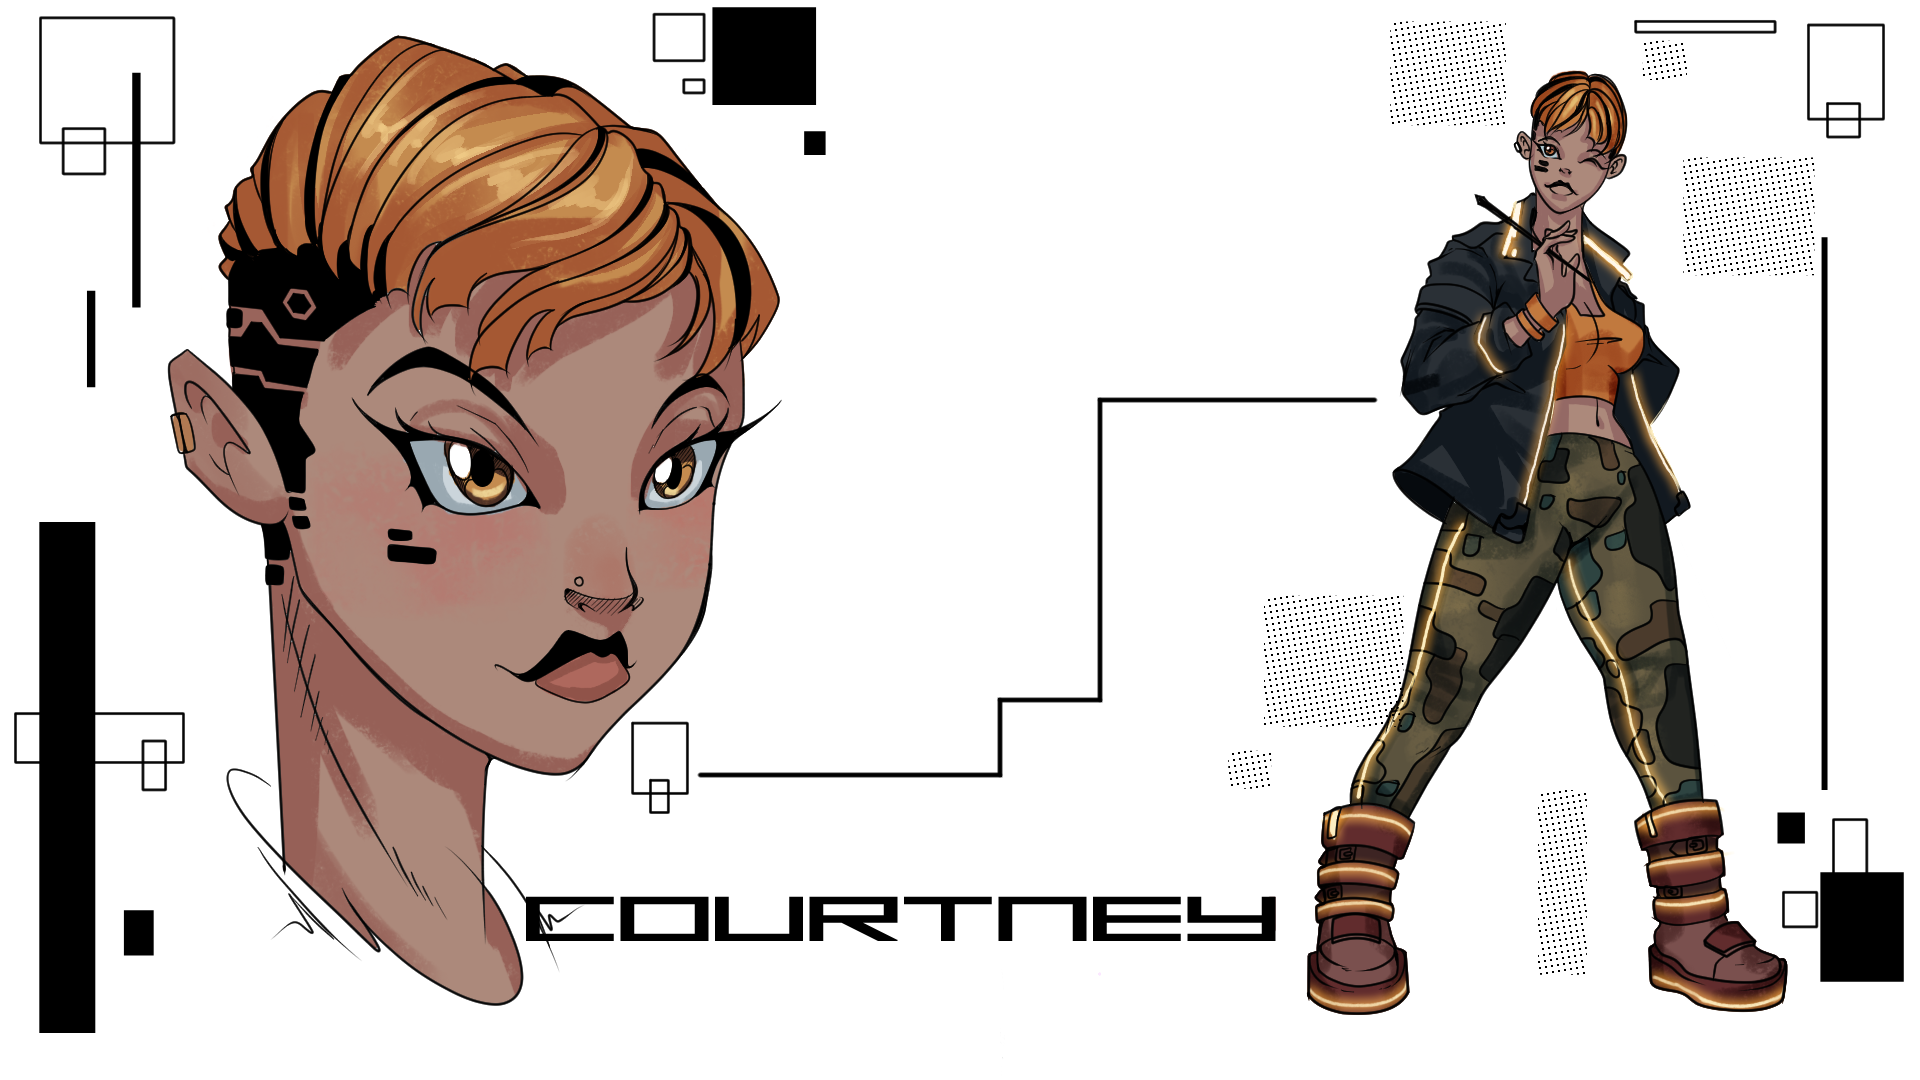 Courtney.png